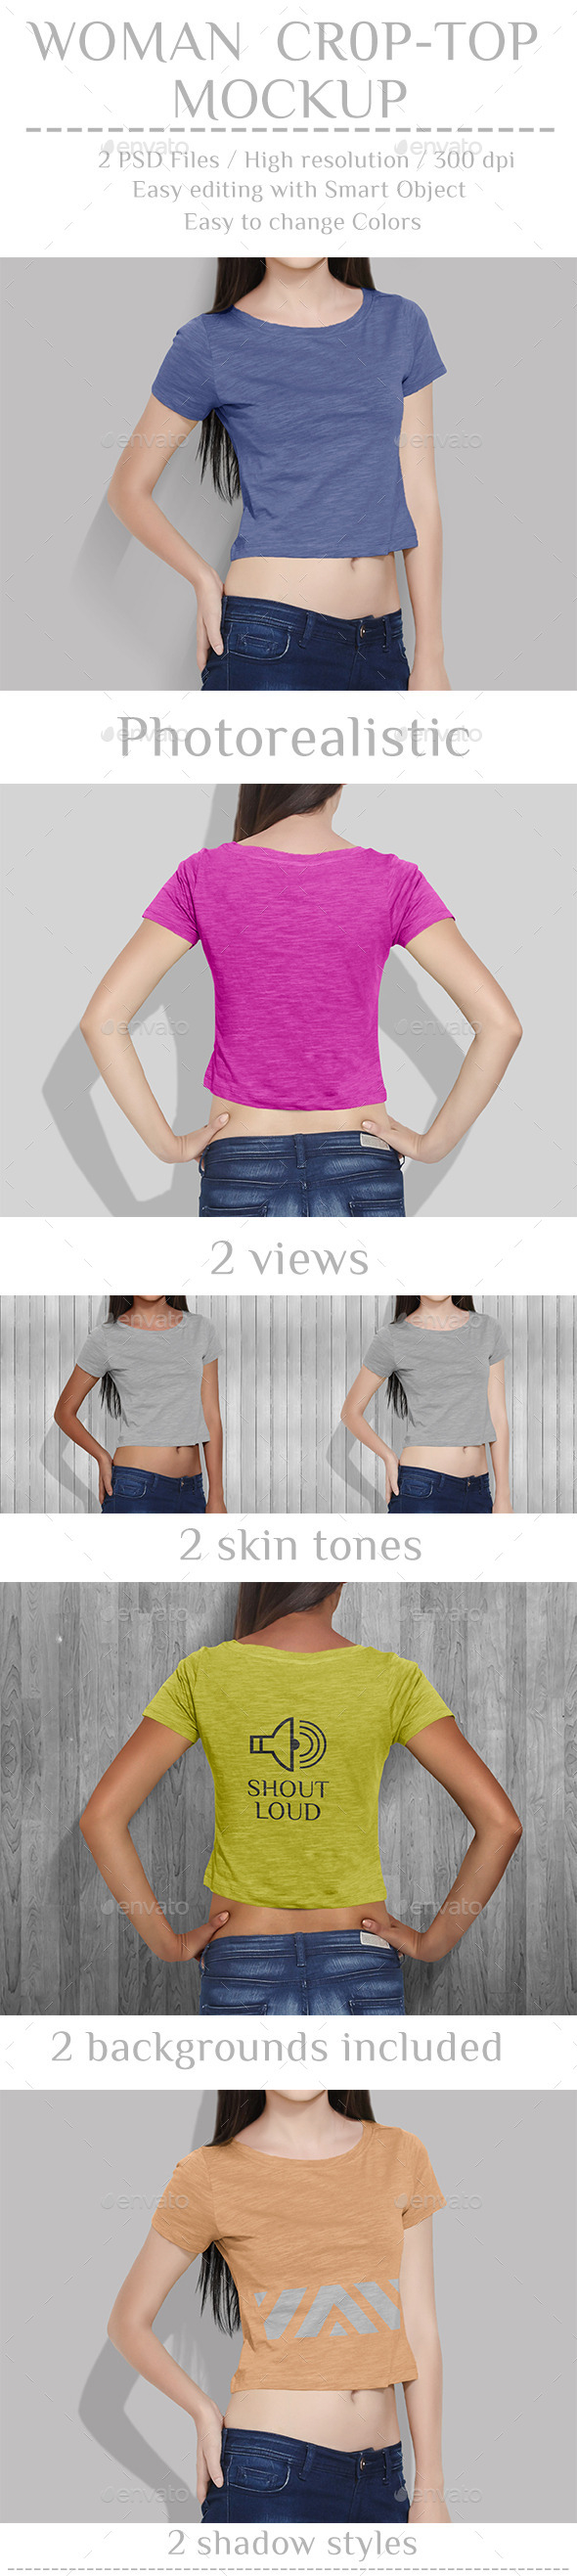 woman_crop_top_mockup